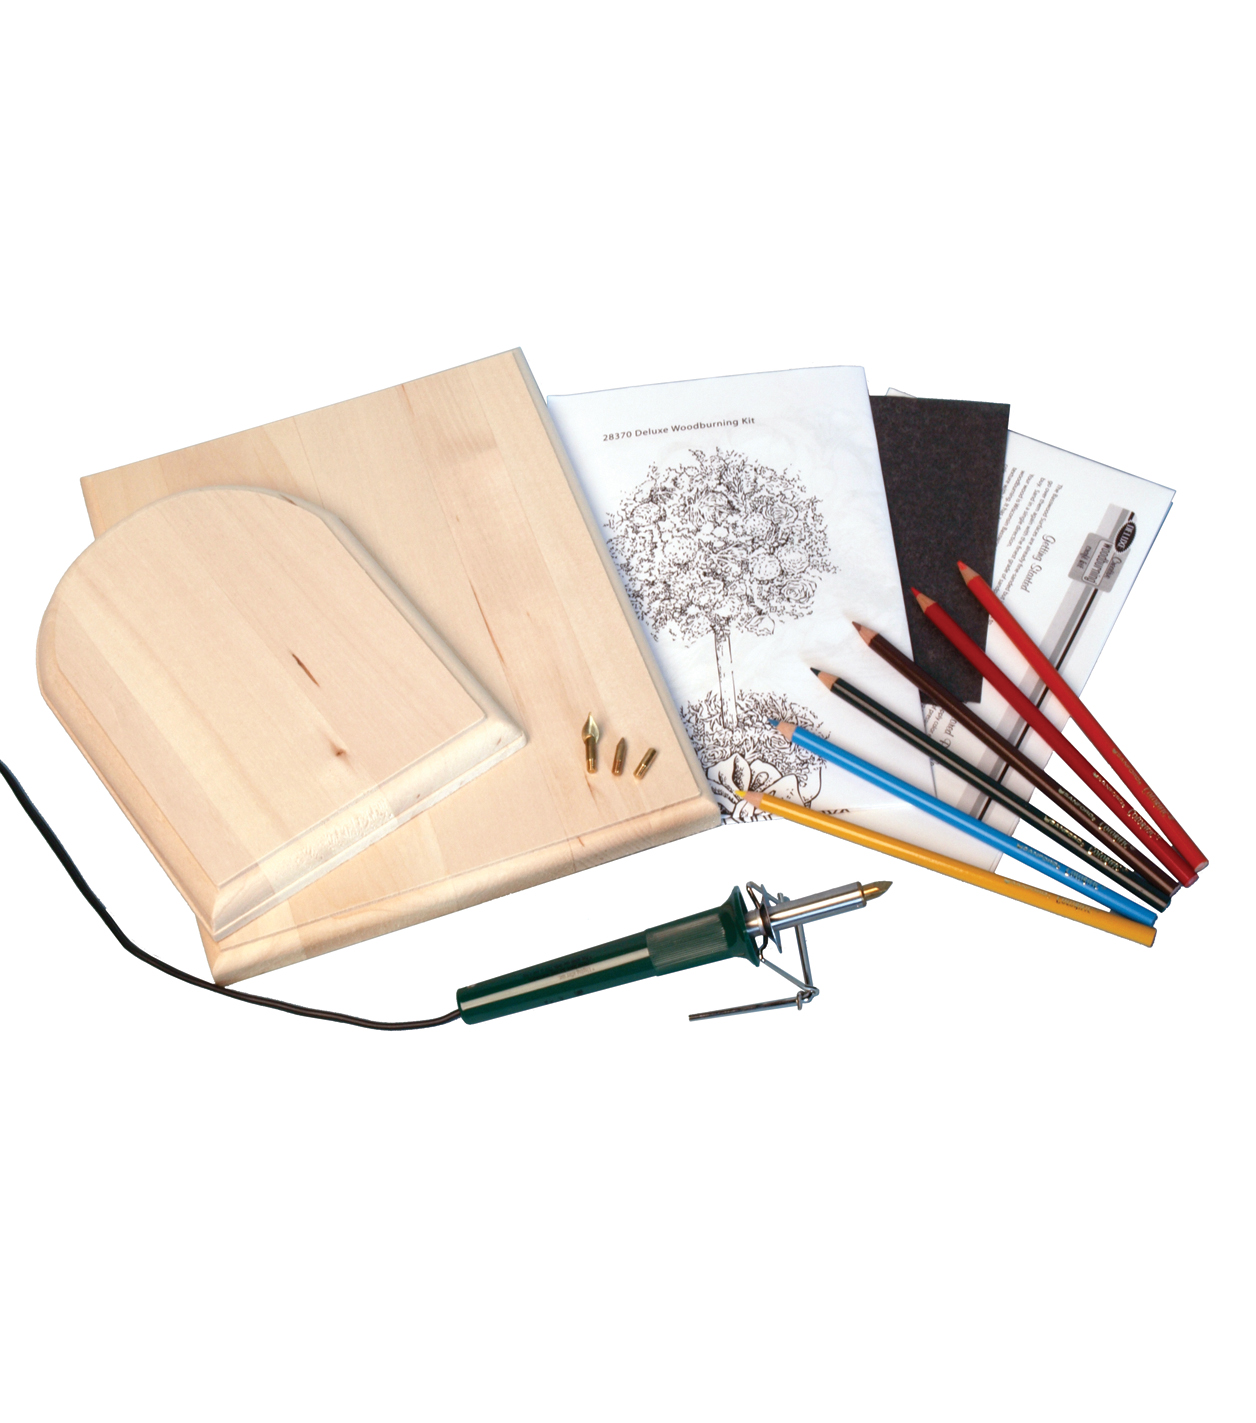 Walnut Hollow Deluxe Woodburning Kit